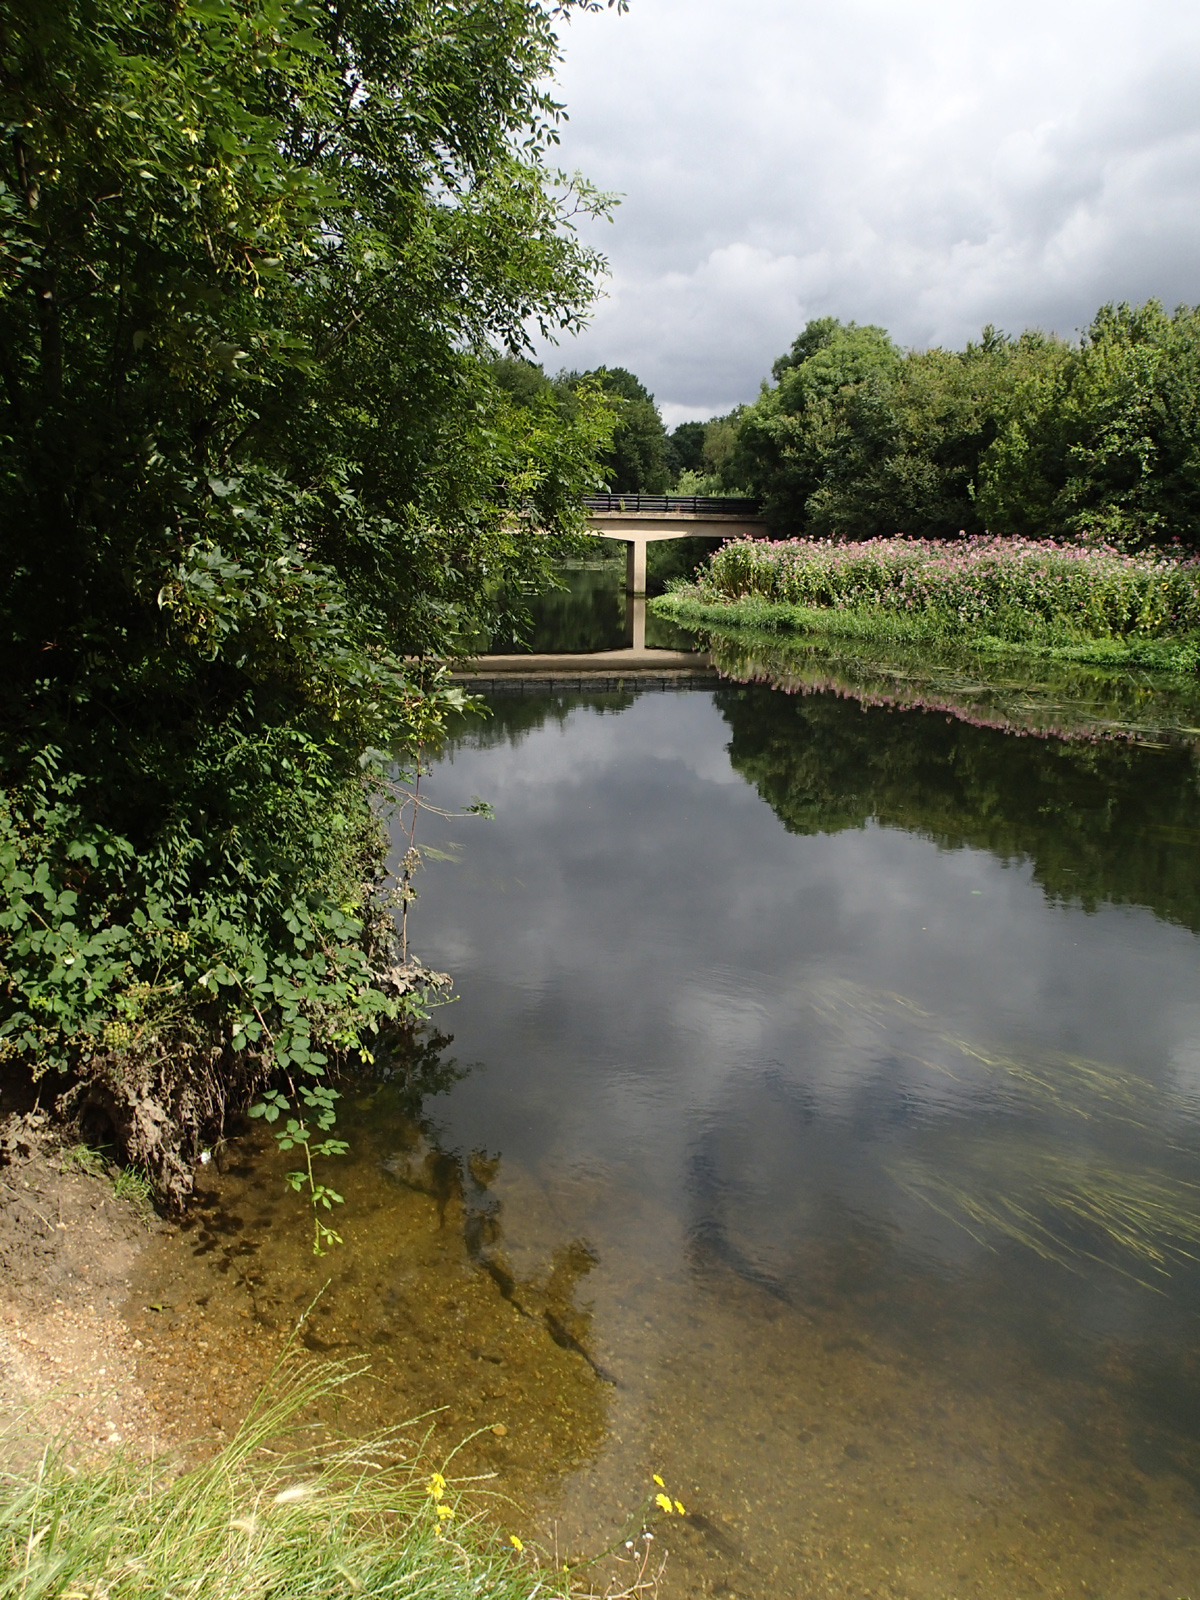 beach, clear water with weeds, Himalayan balsam on bank, trees behind